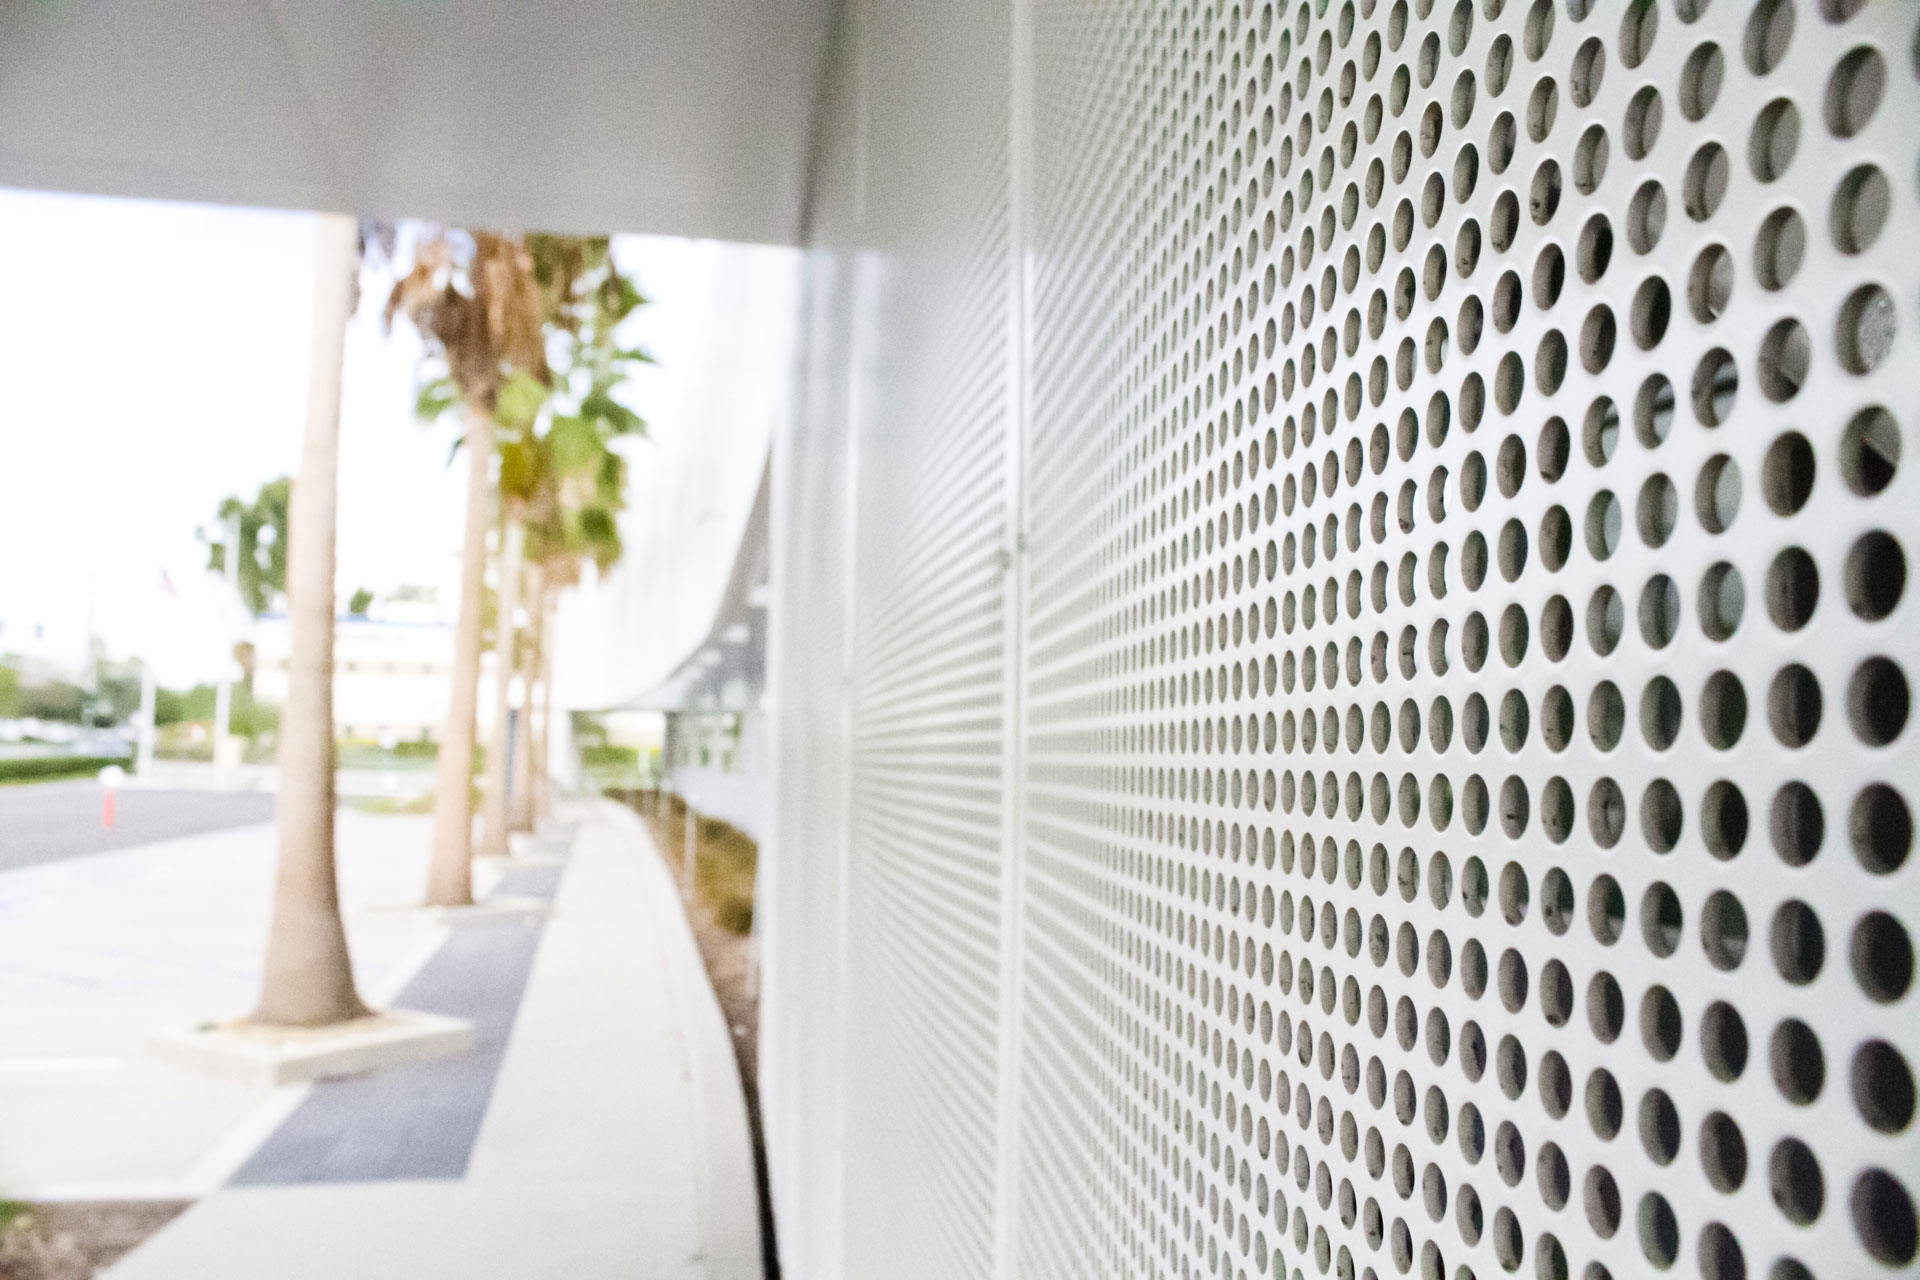 Architectural Perforated Perforated Facades